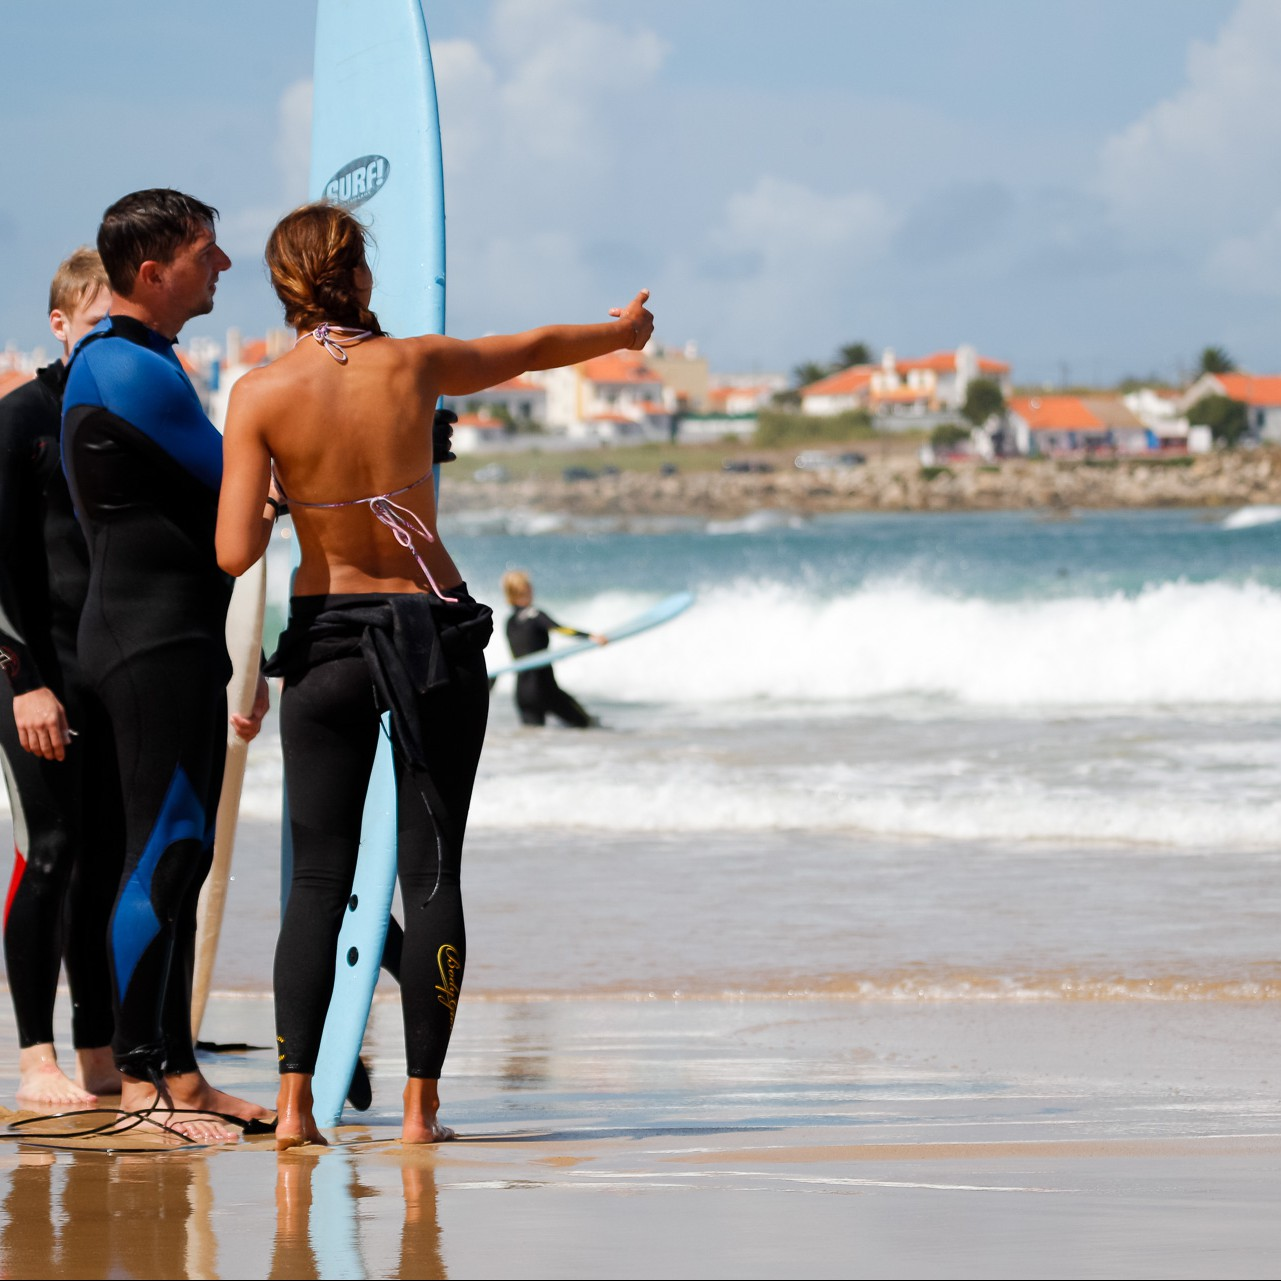 First taster surf lesson